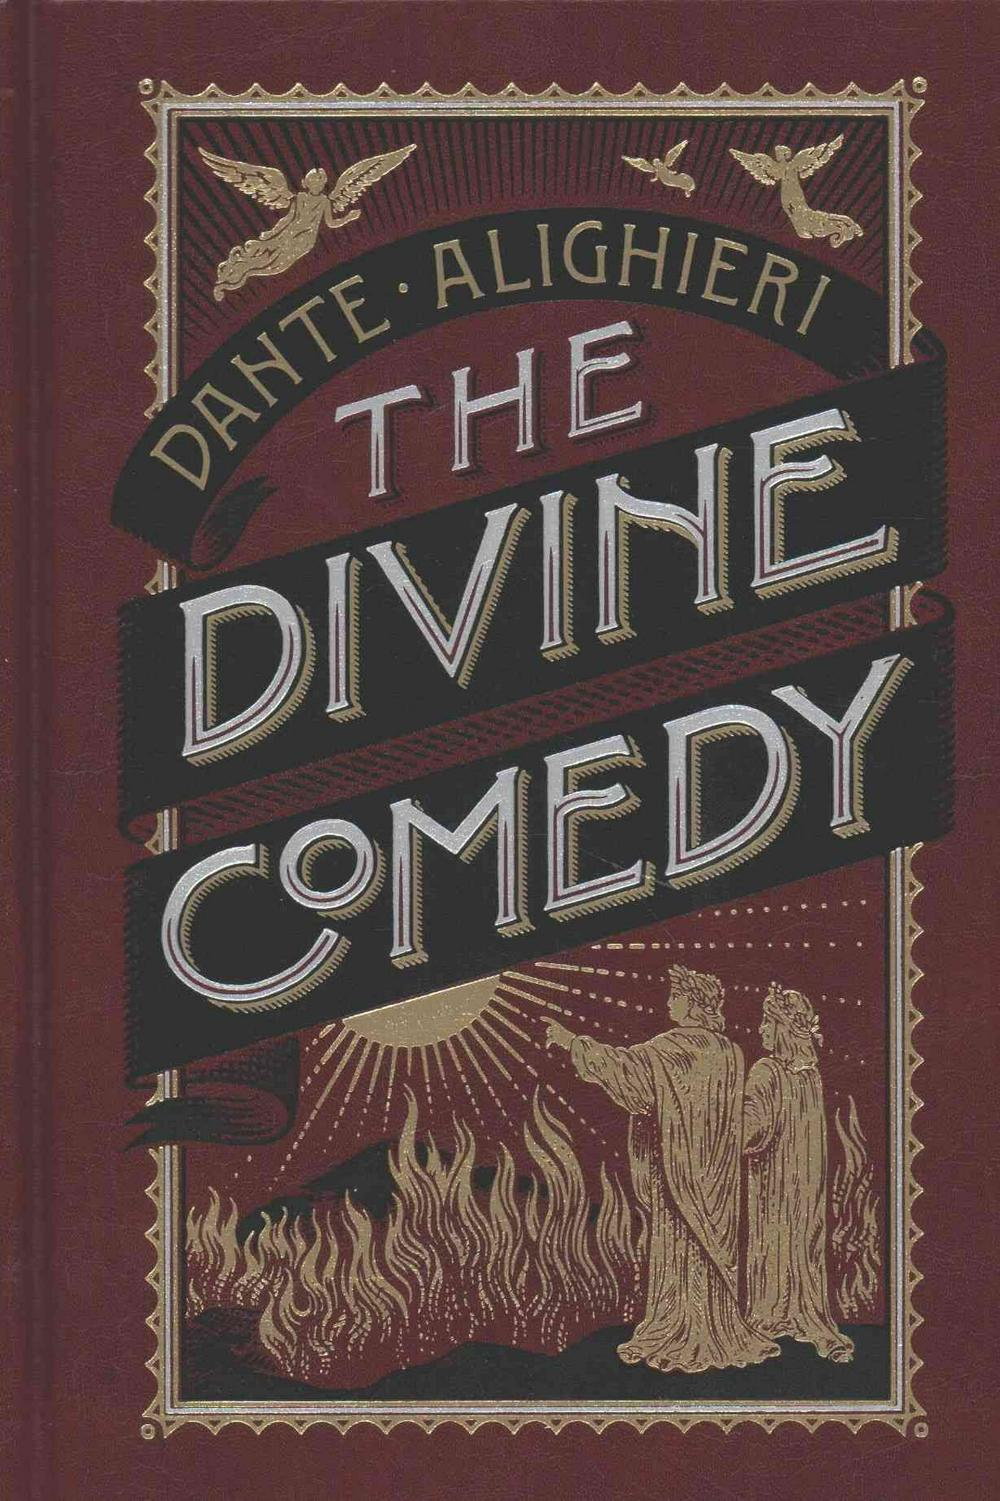 Divine ComedyBarnes & Noble Leatherbound Classic Collection